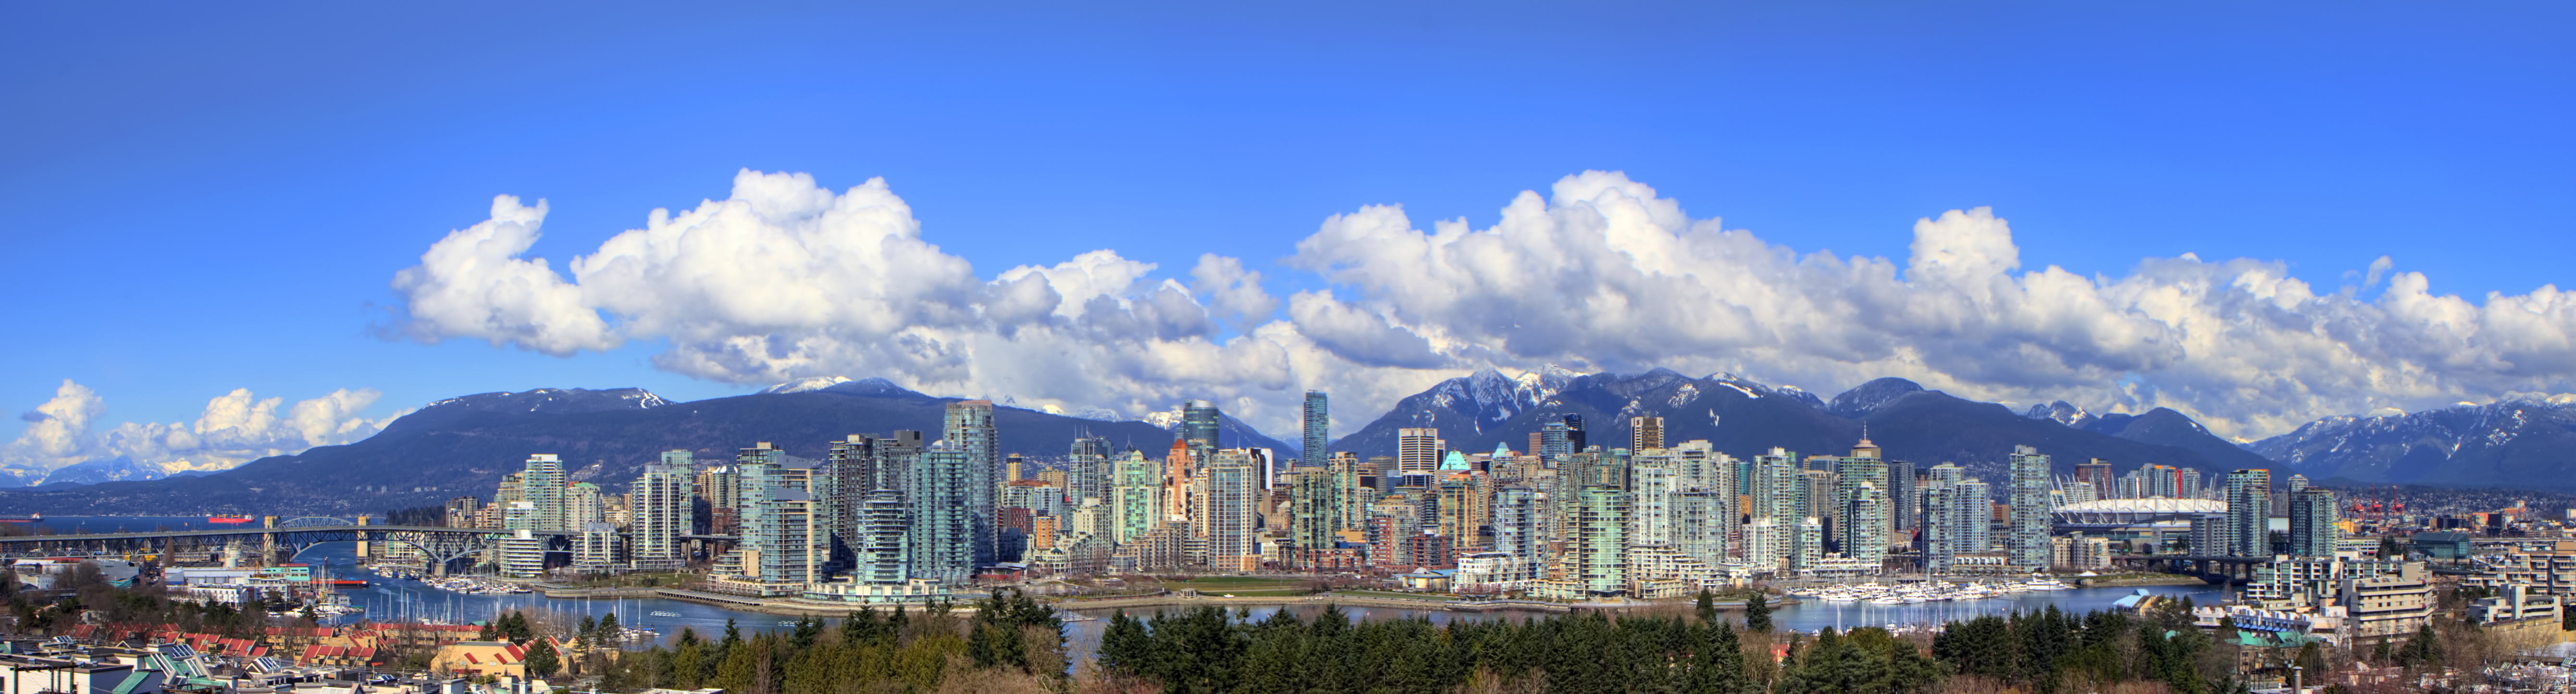 Vancouver: Spectacular by nature! | GOGO Vacations Blog